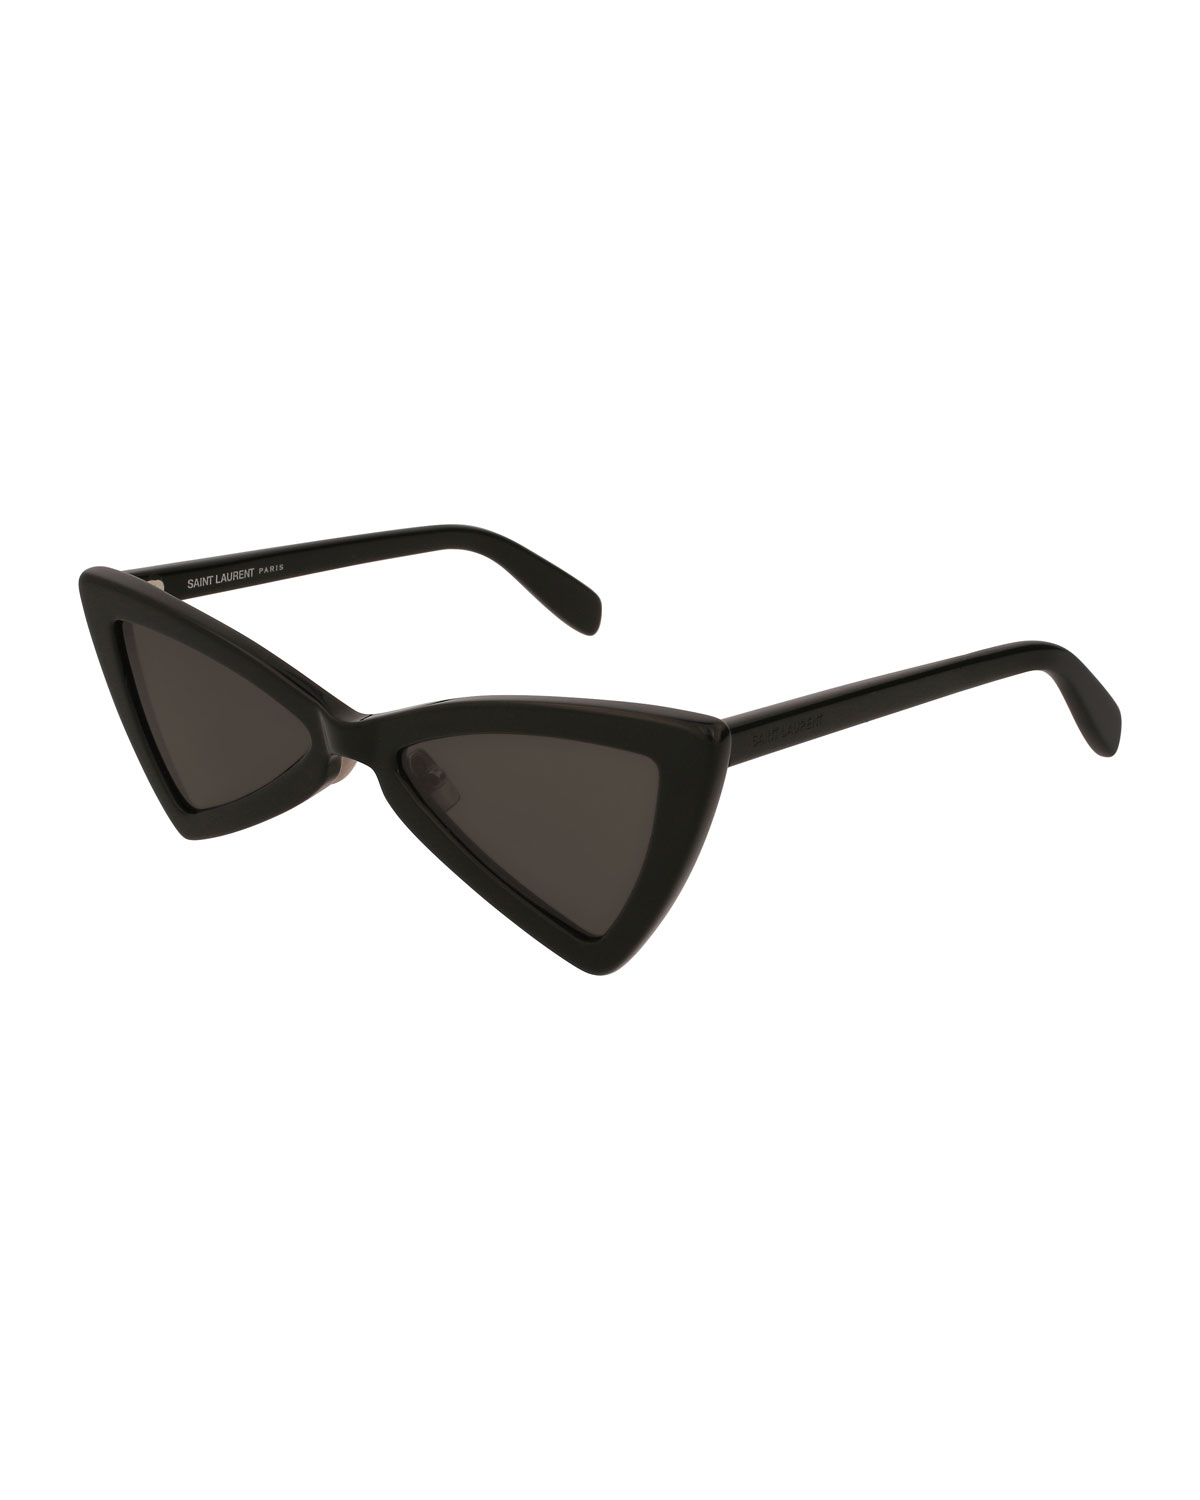 0b2342d7cf Saint Laurent SL 207 Triangle Acetate Sunglasses